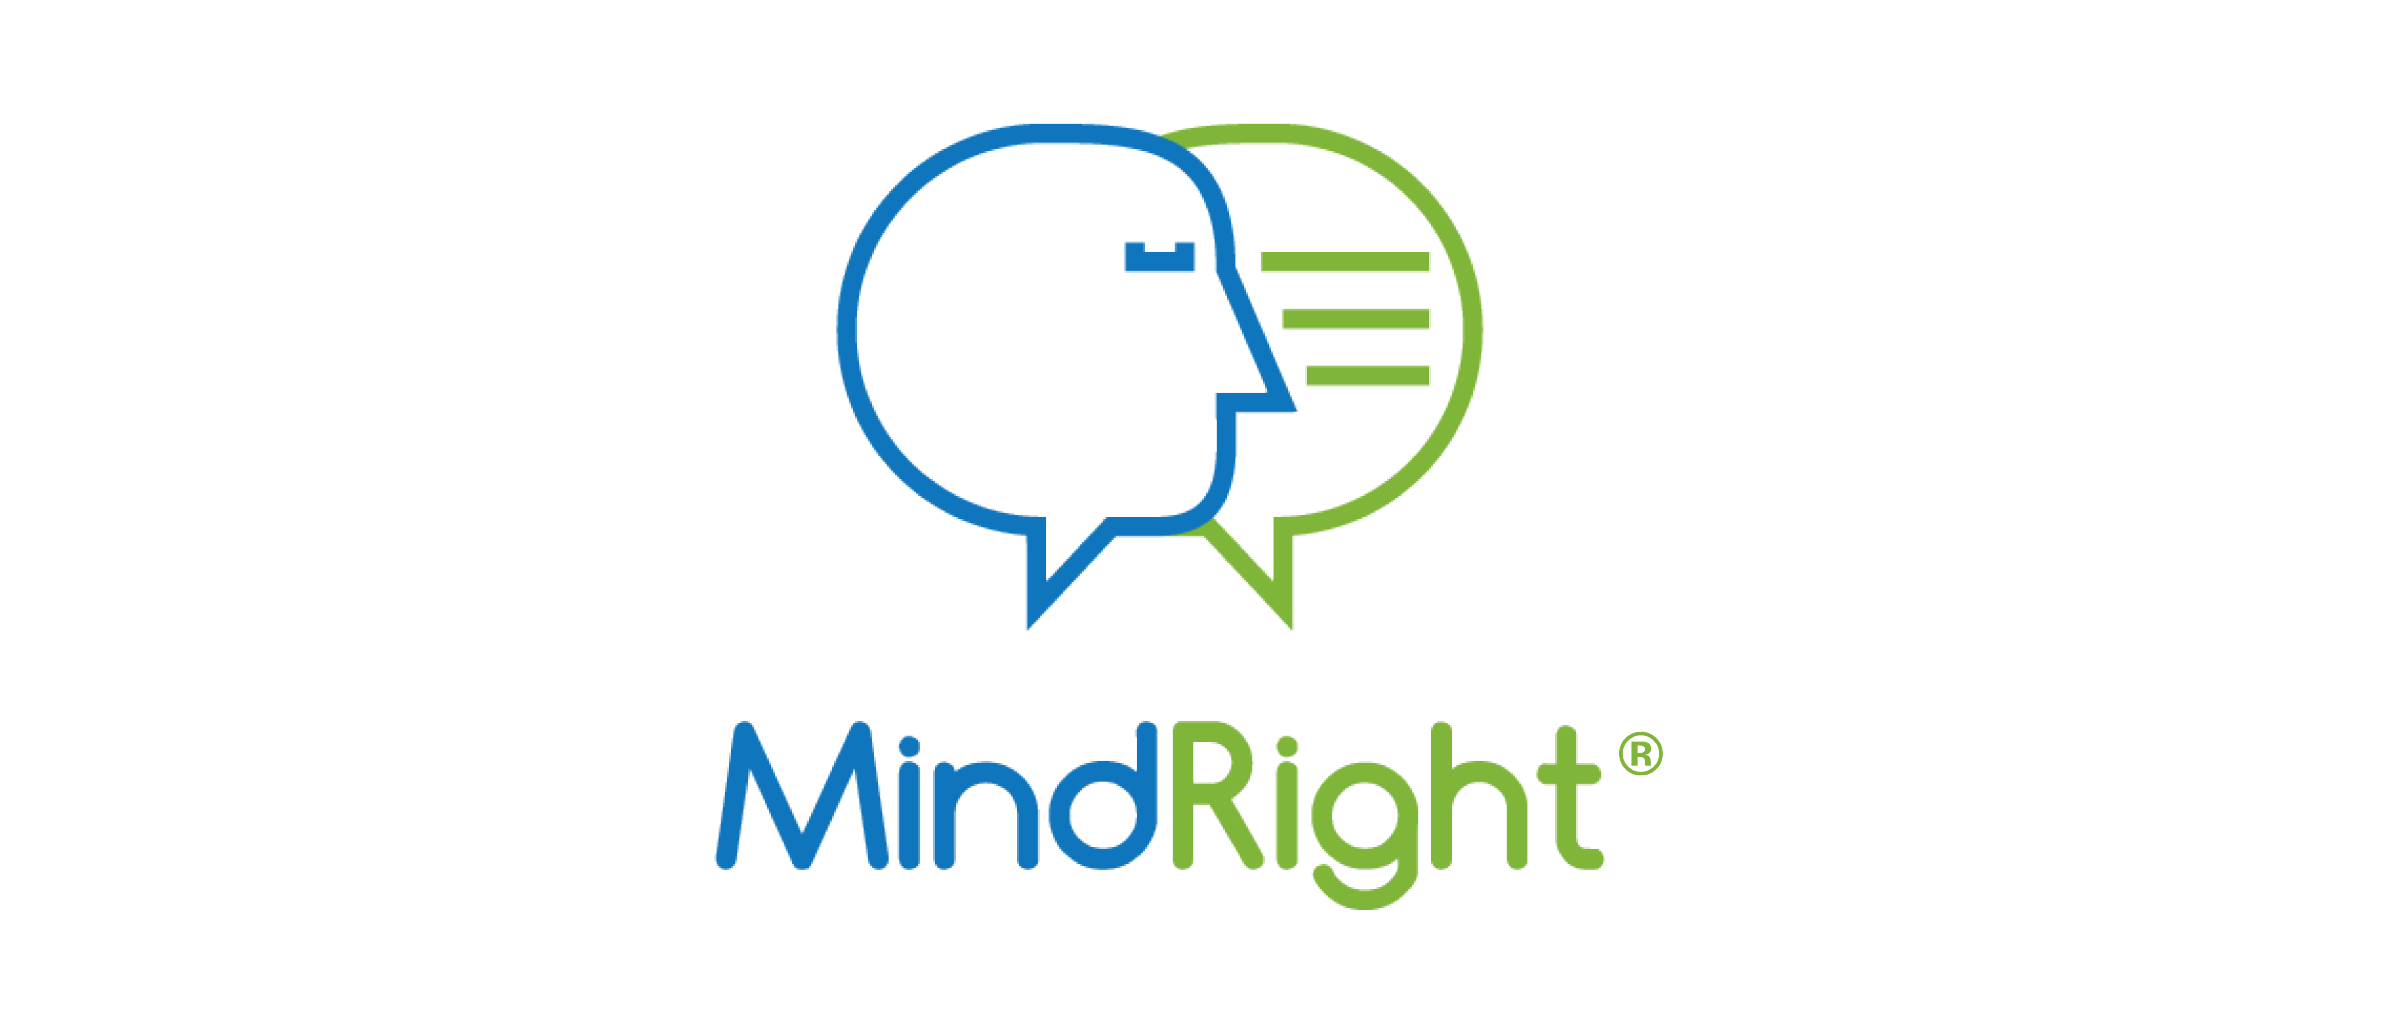 MindRight Health (Mental health coaching for the low income and minorities)